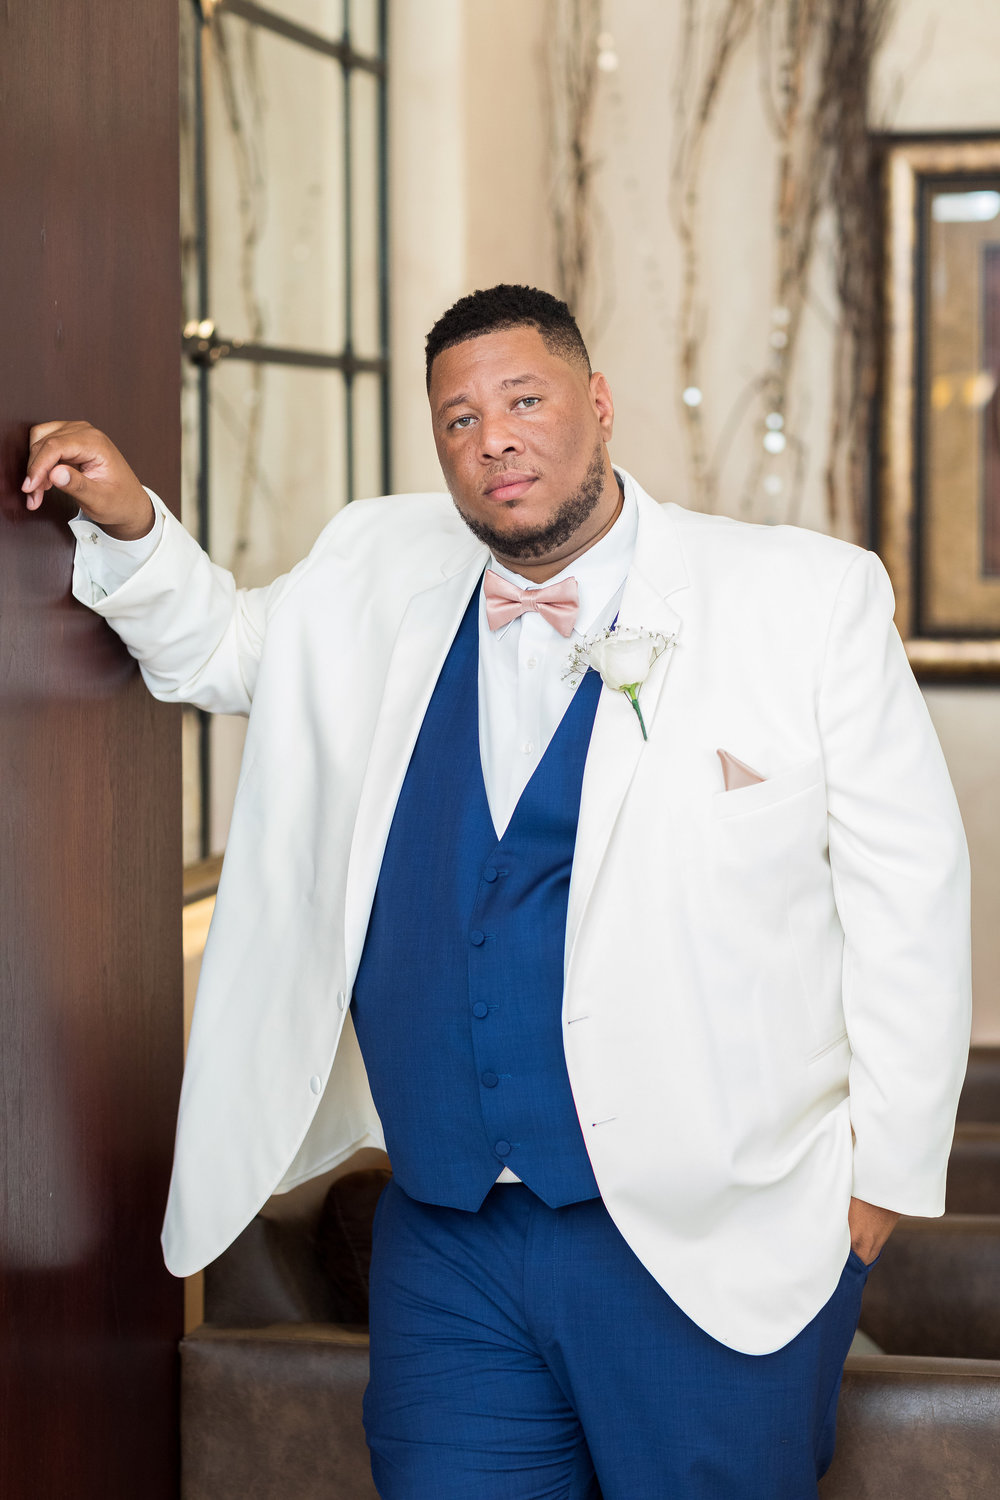 ! Stylish Groom in a White Tuxedo Jacket with a Blue Vest LA Weddings.jpg